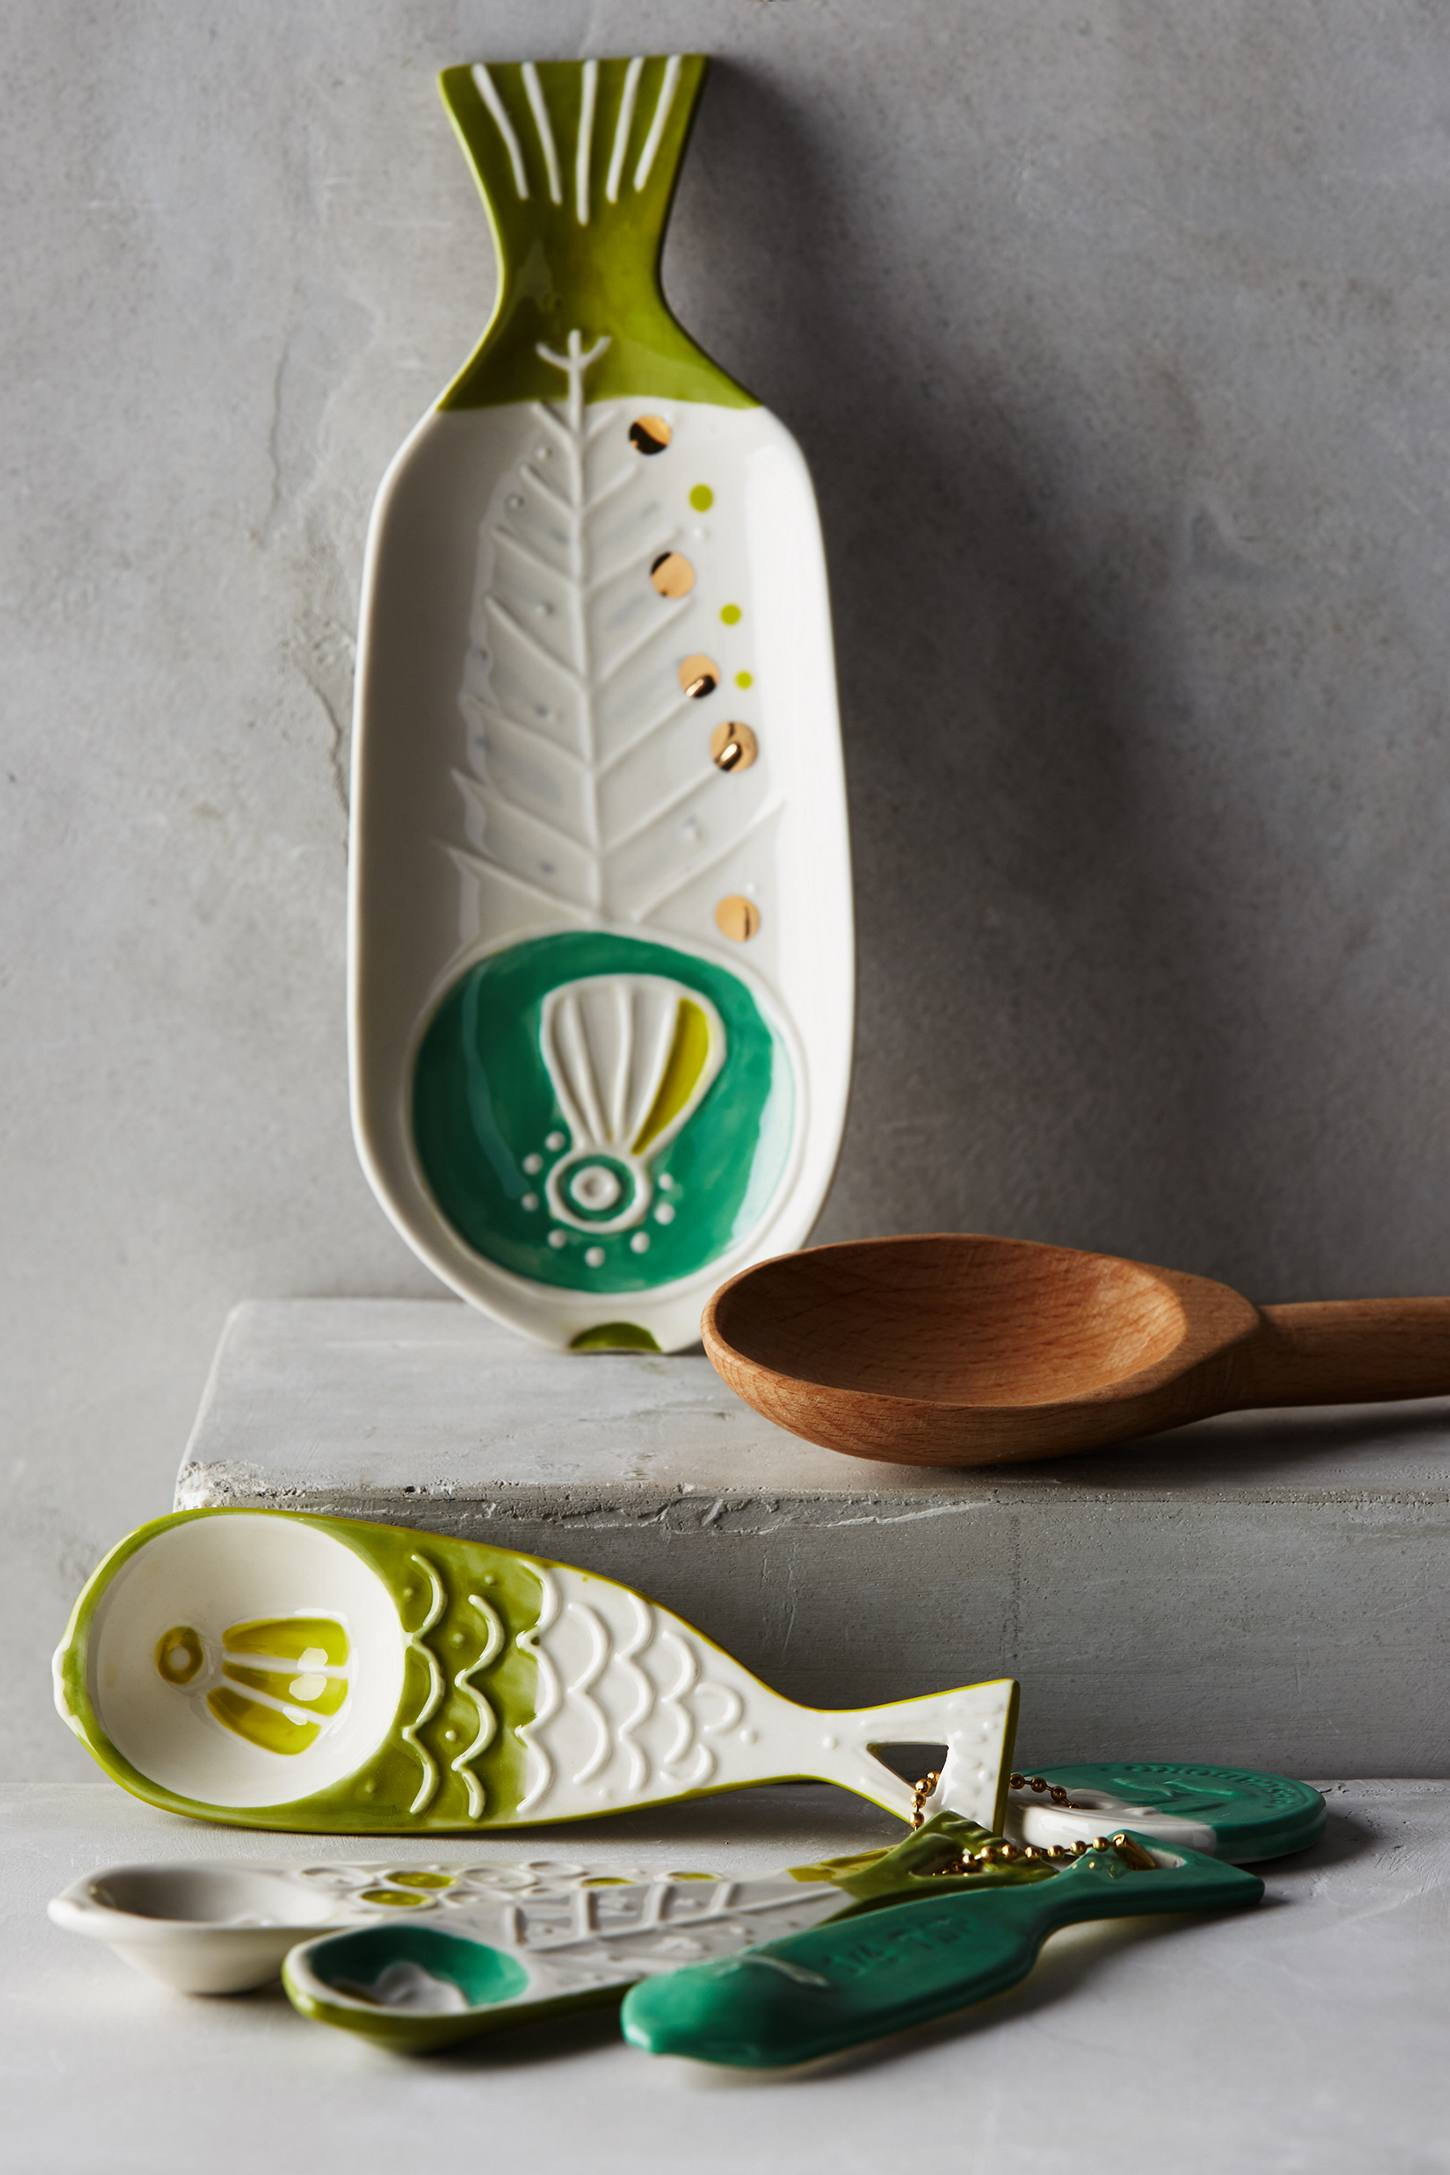 Pescadoro Spoon Rest